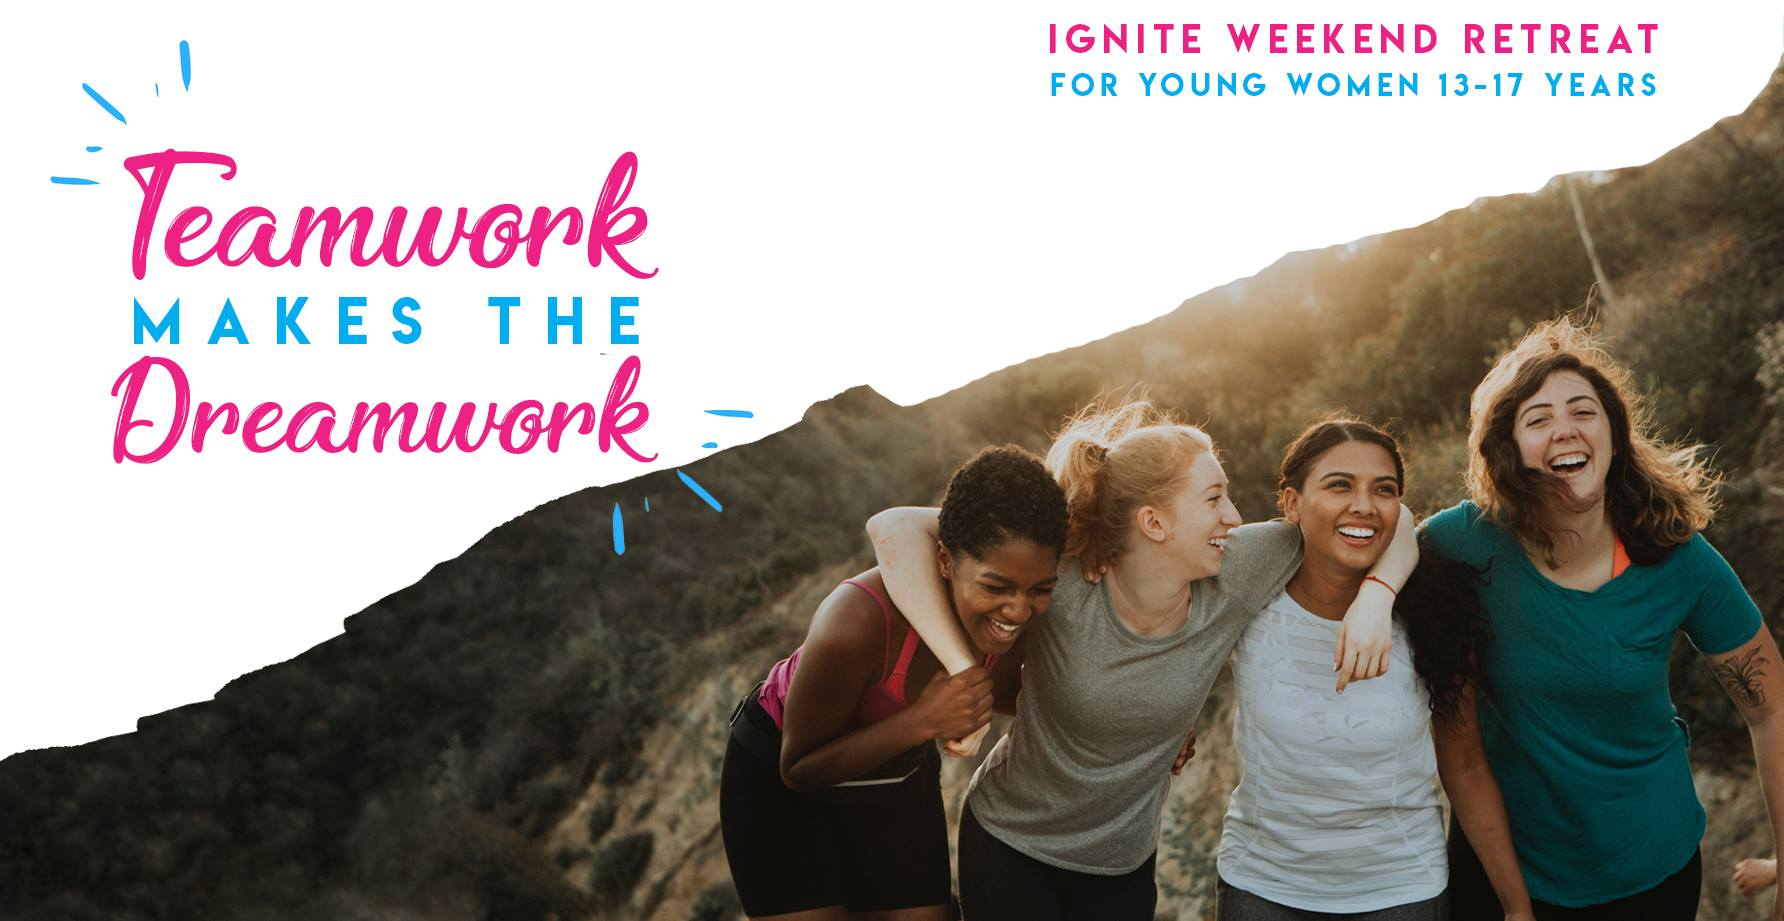 Ignite Retreat for young Women